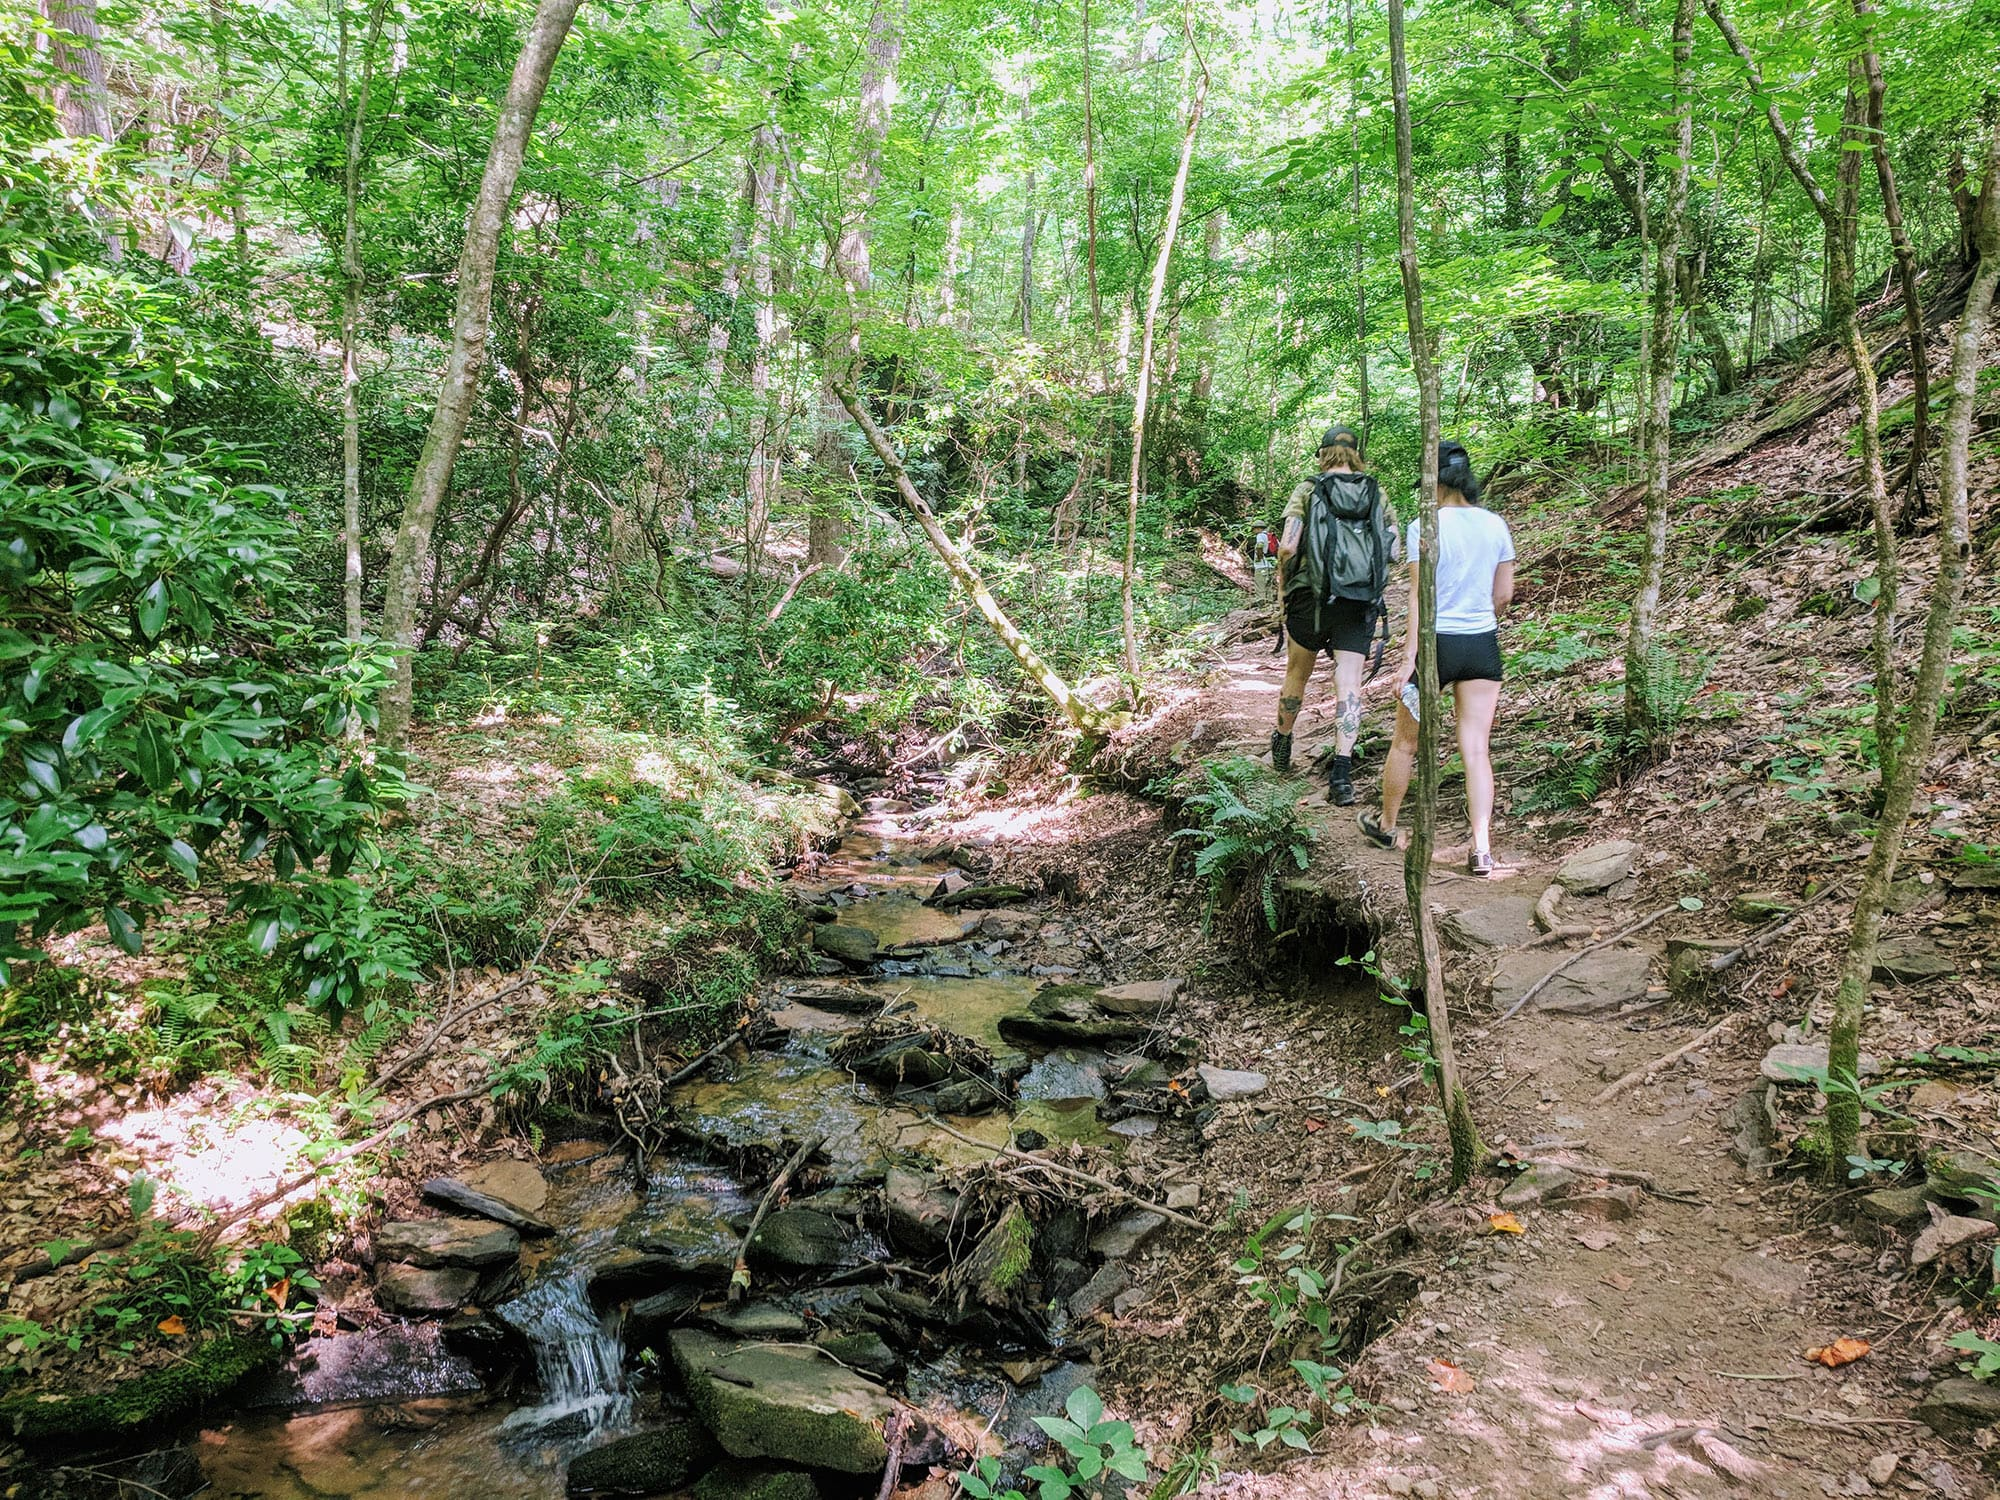 Hiking on the East Palisades Trail in Atlanta